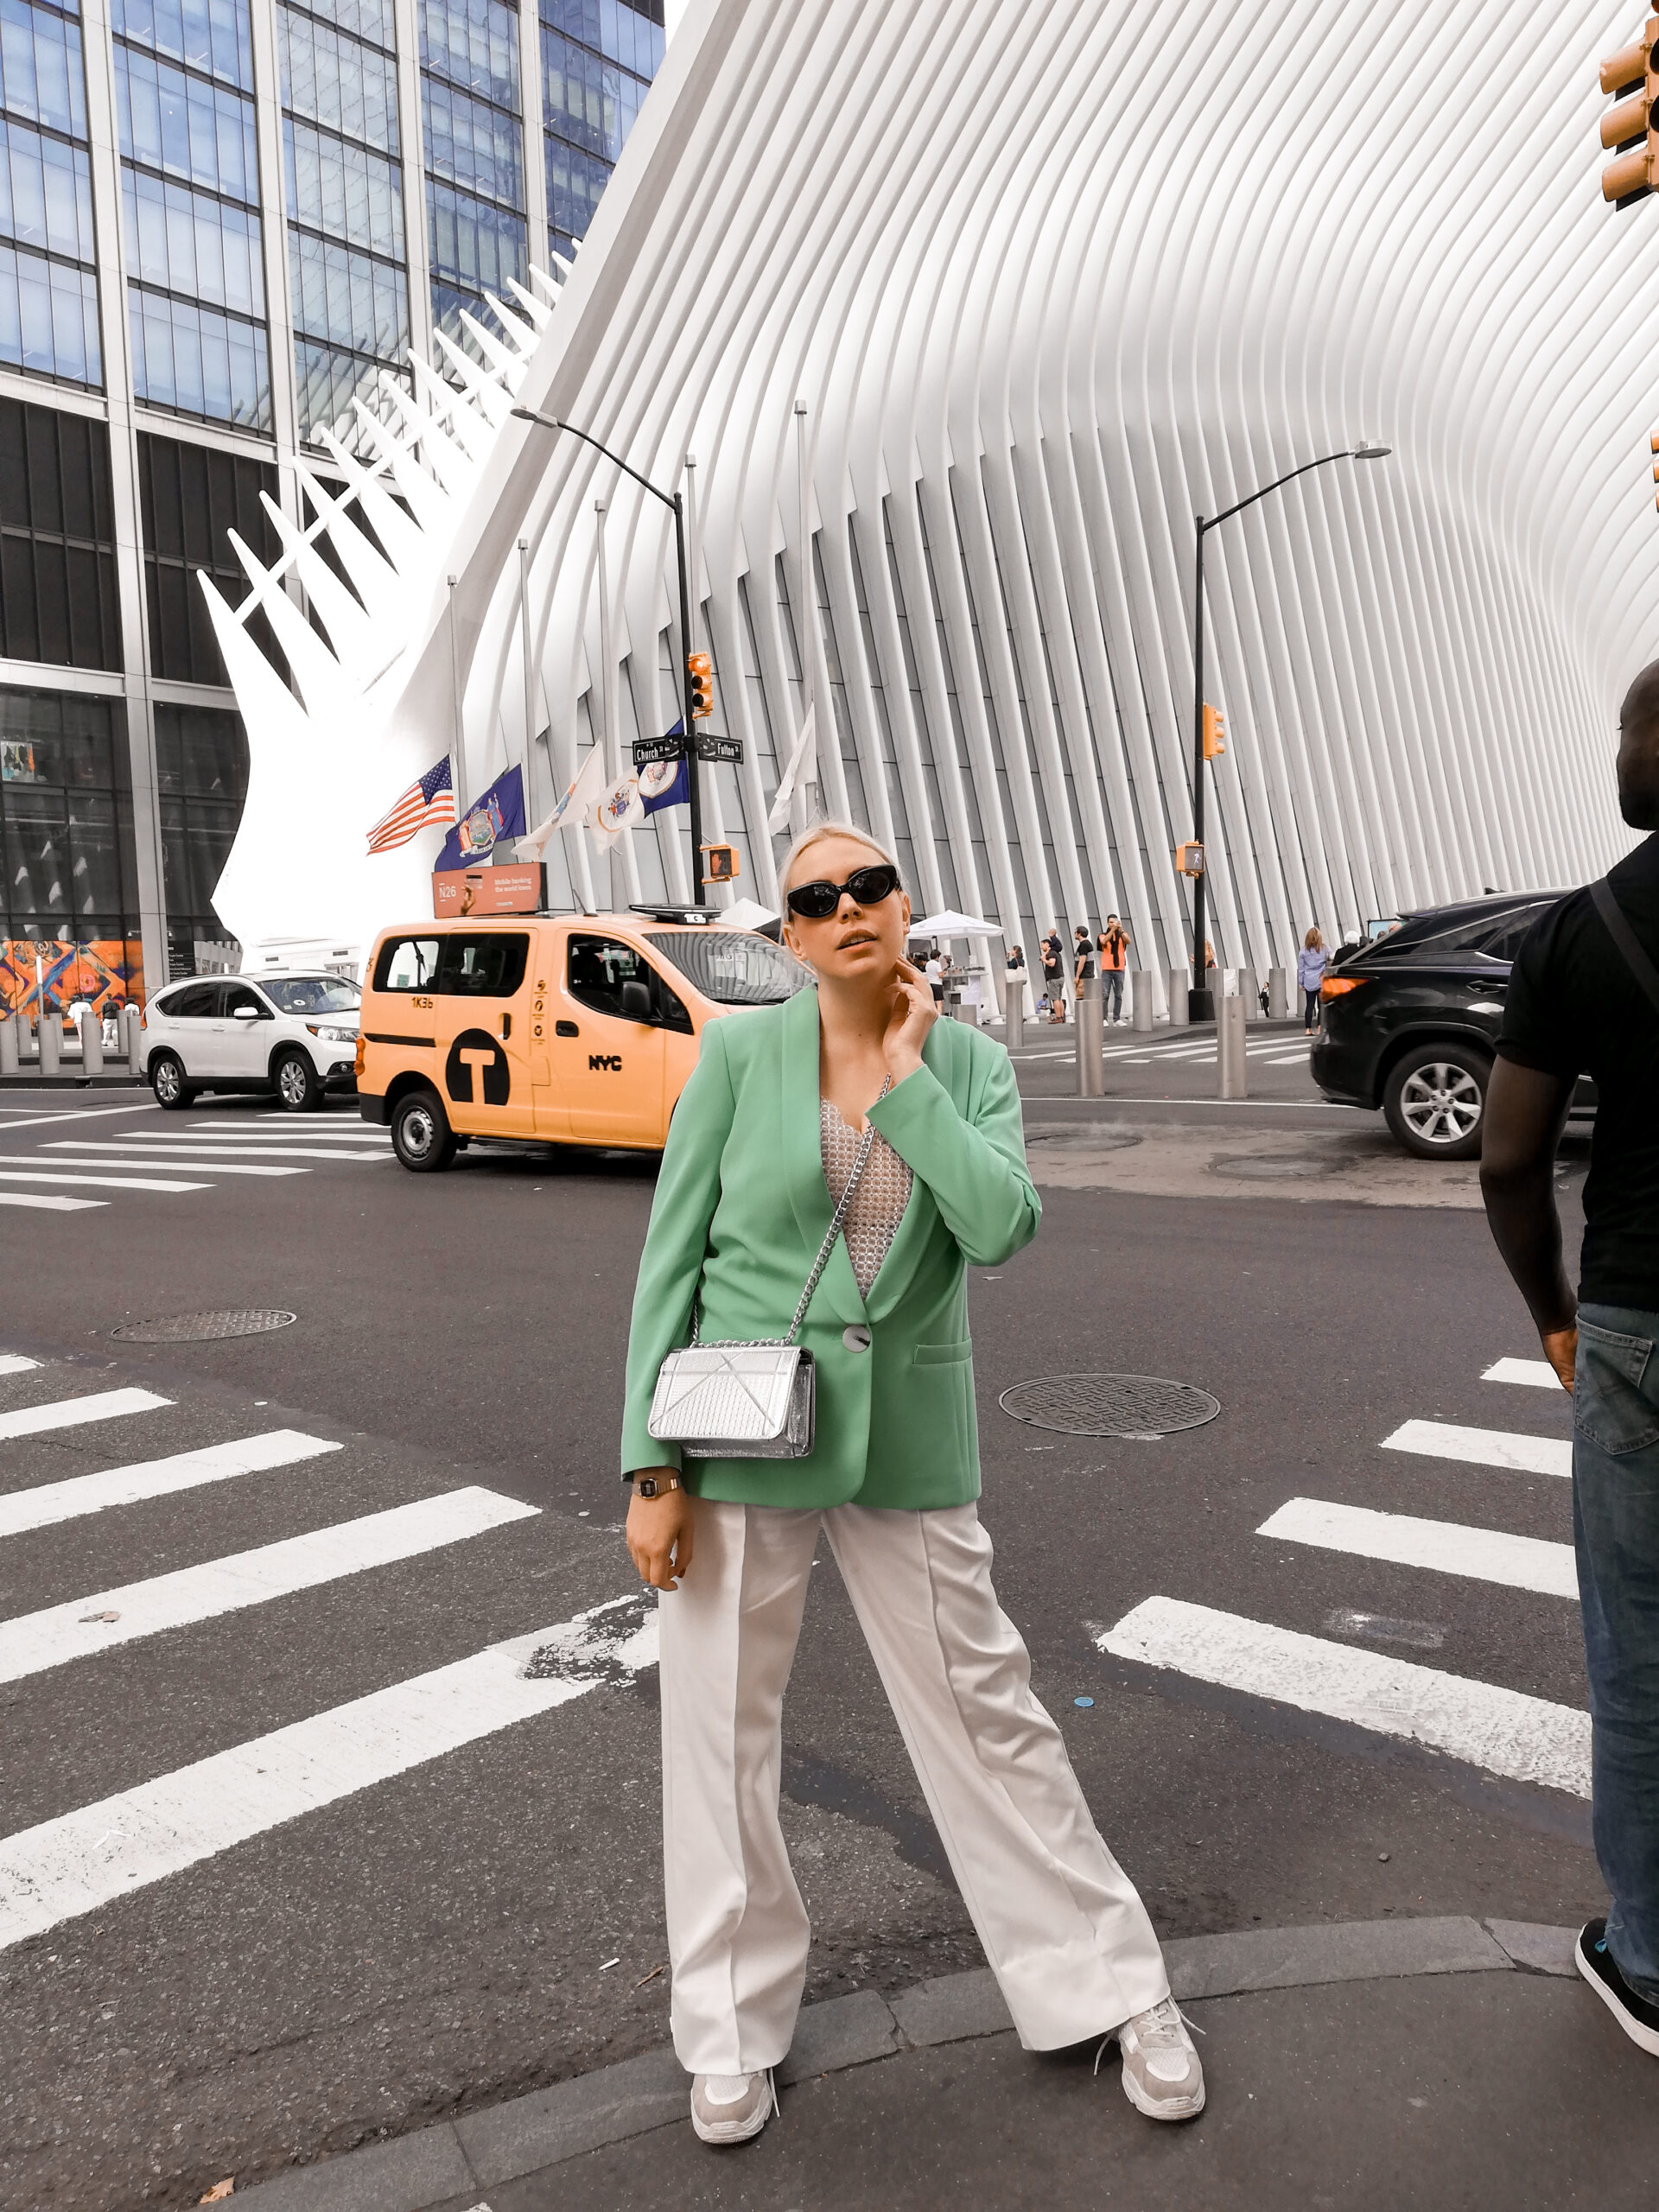 daniela soriano, ny, nyc, the oculus, nyfw, street style, ootd, outfit, mint blazer, wide leg pants, silver bag, dior bag dupe,